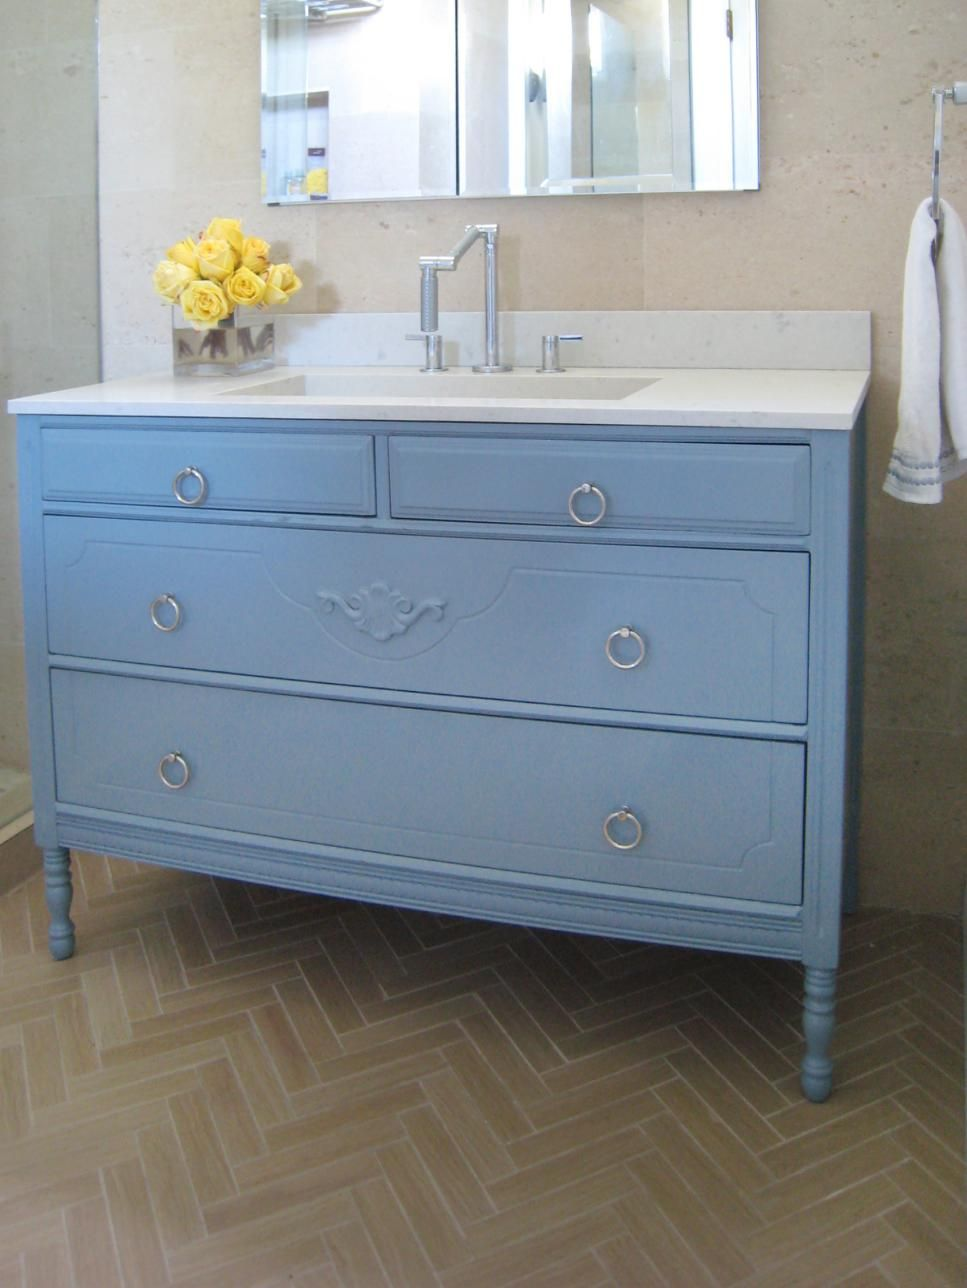 25 Ways to Upcycle Your Old Stuff   Vanities, Alternative and Diy ...